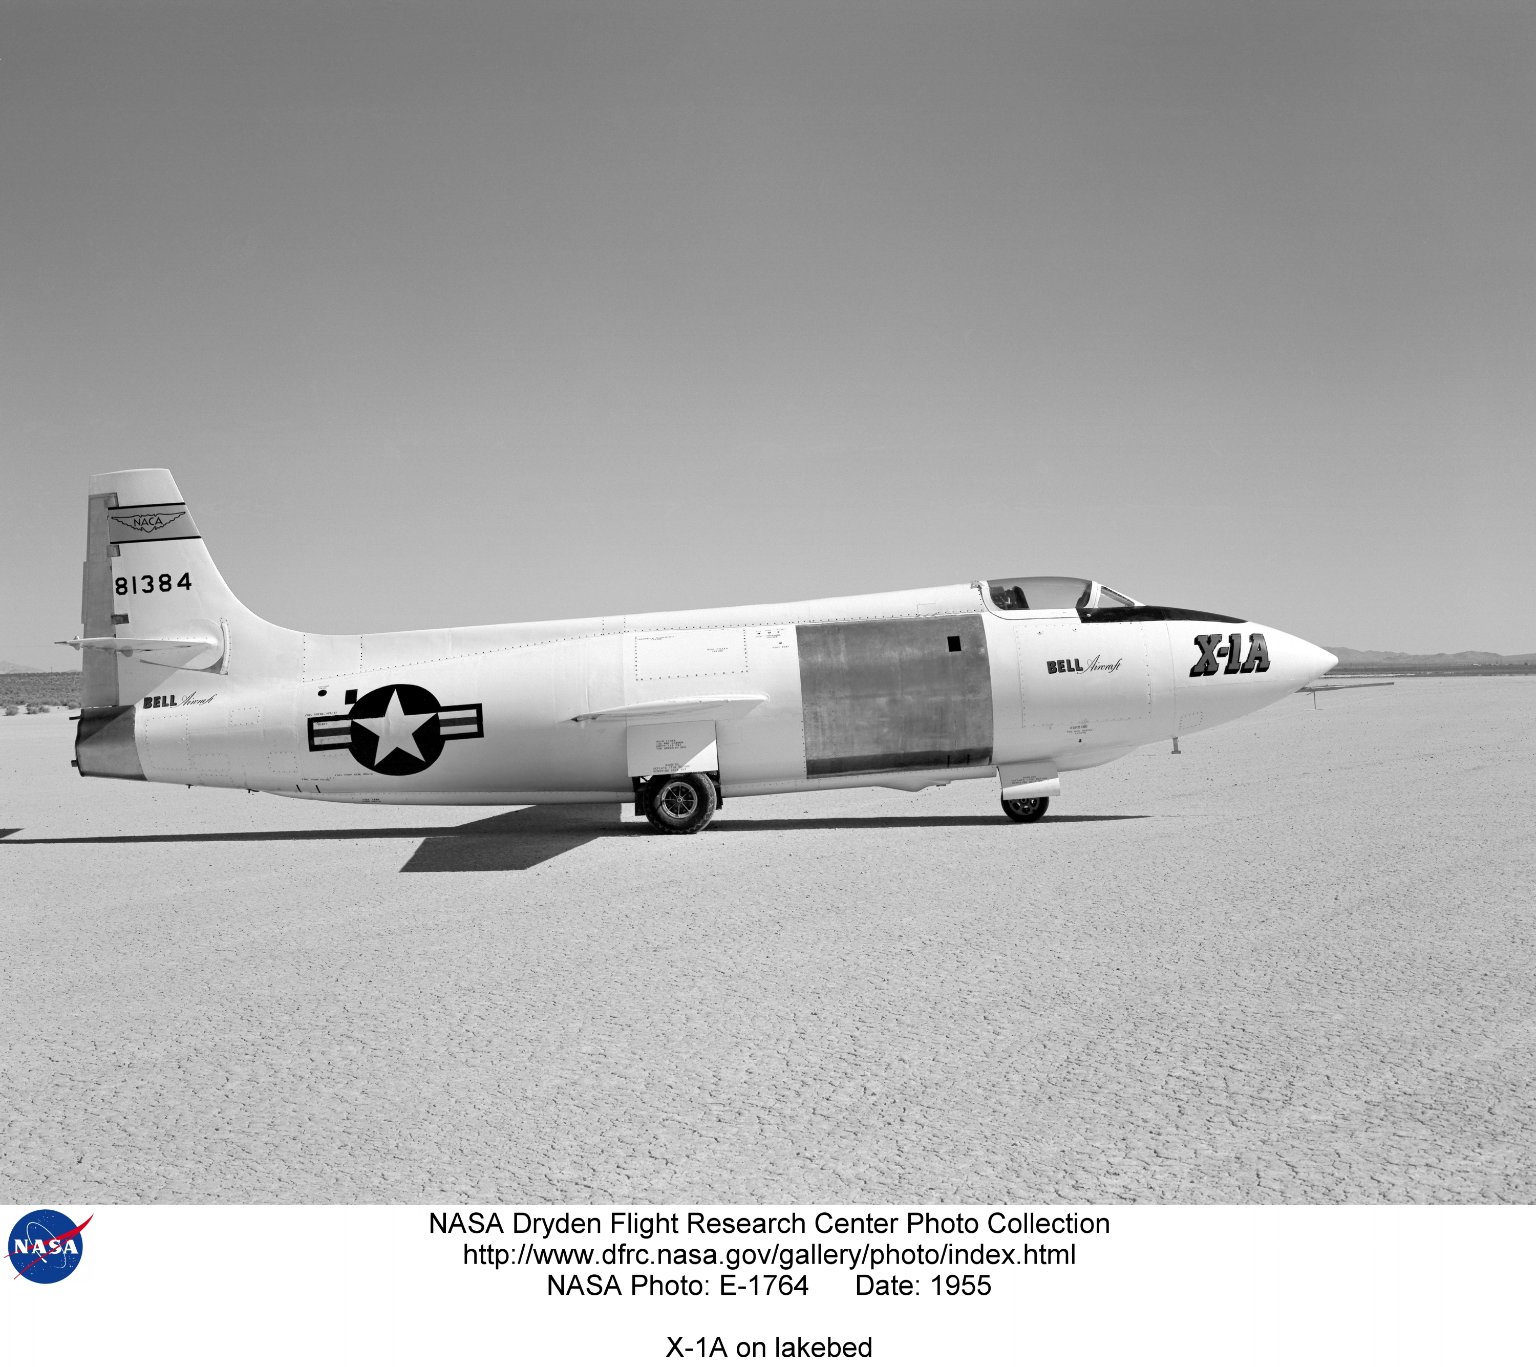 X-1A on lakebed